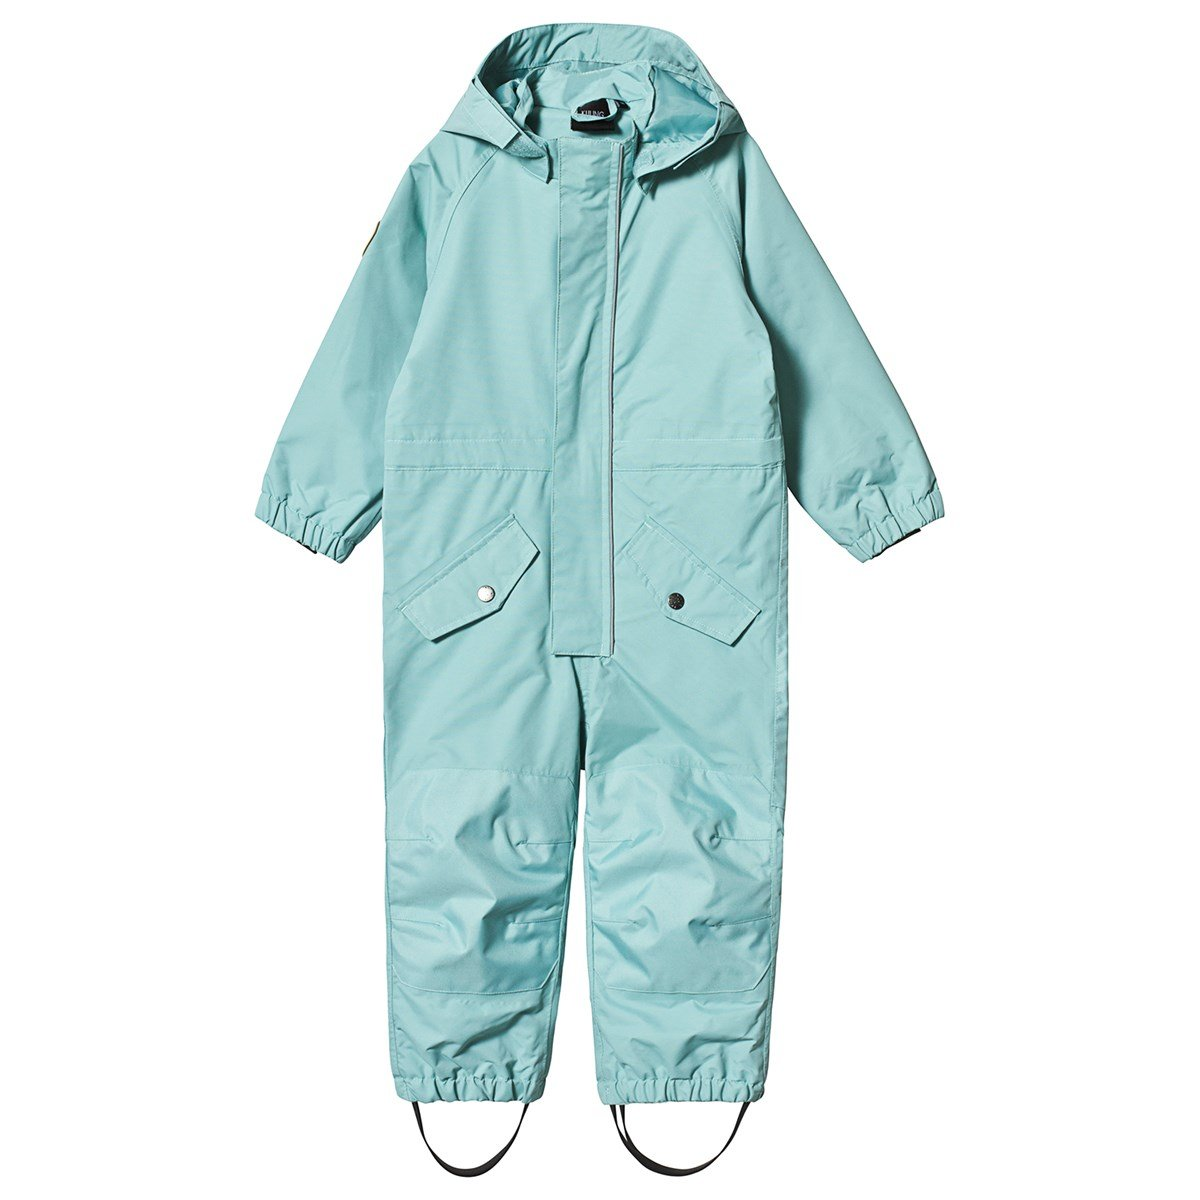 Kuling Charmy Turquoise Bristol Shell Coverall